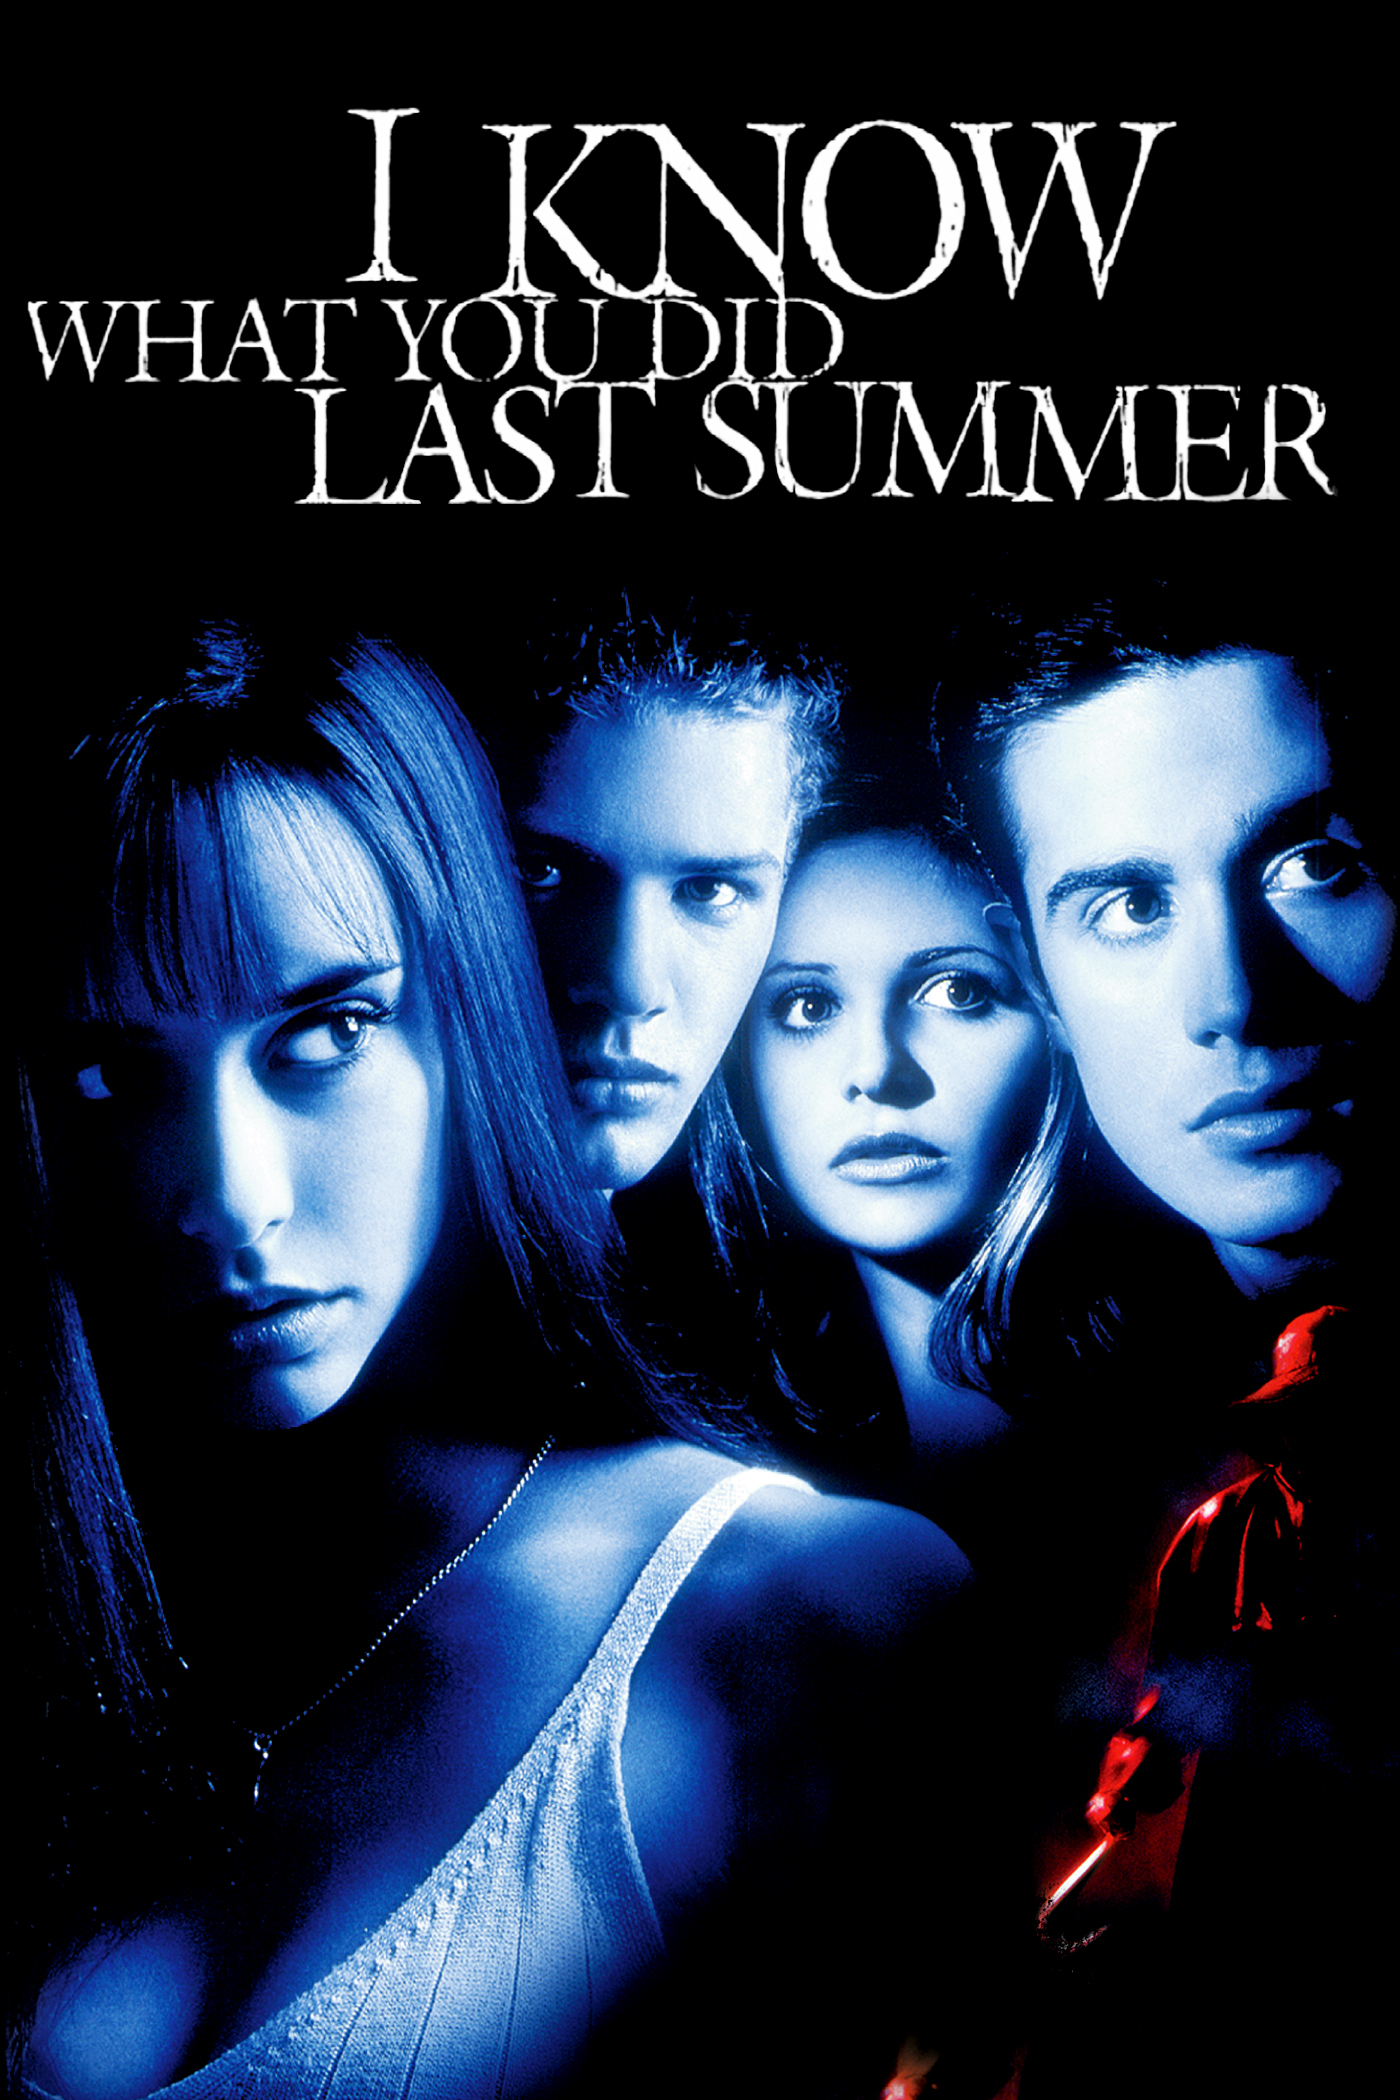 19 - I Know What You Did Last Summer